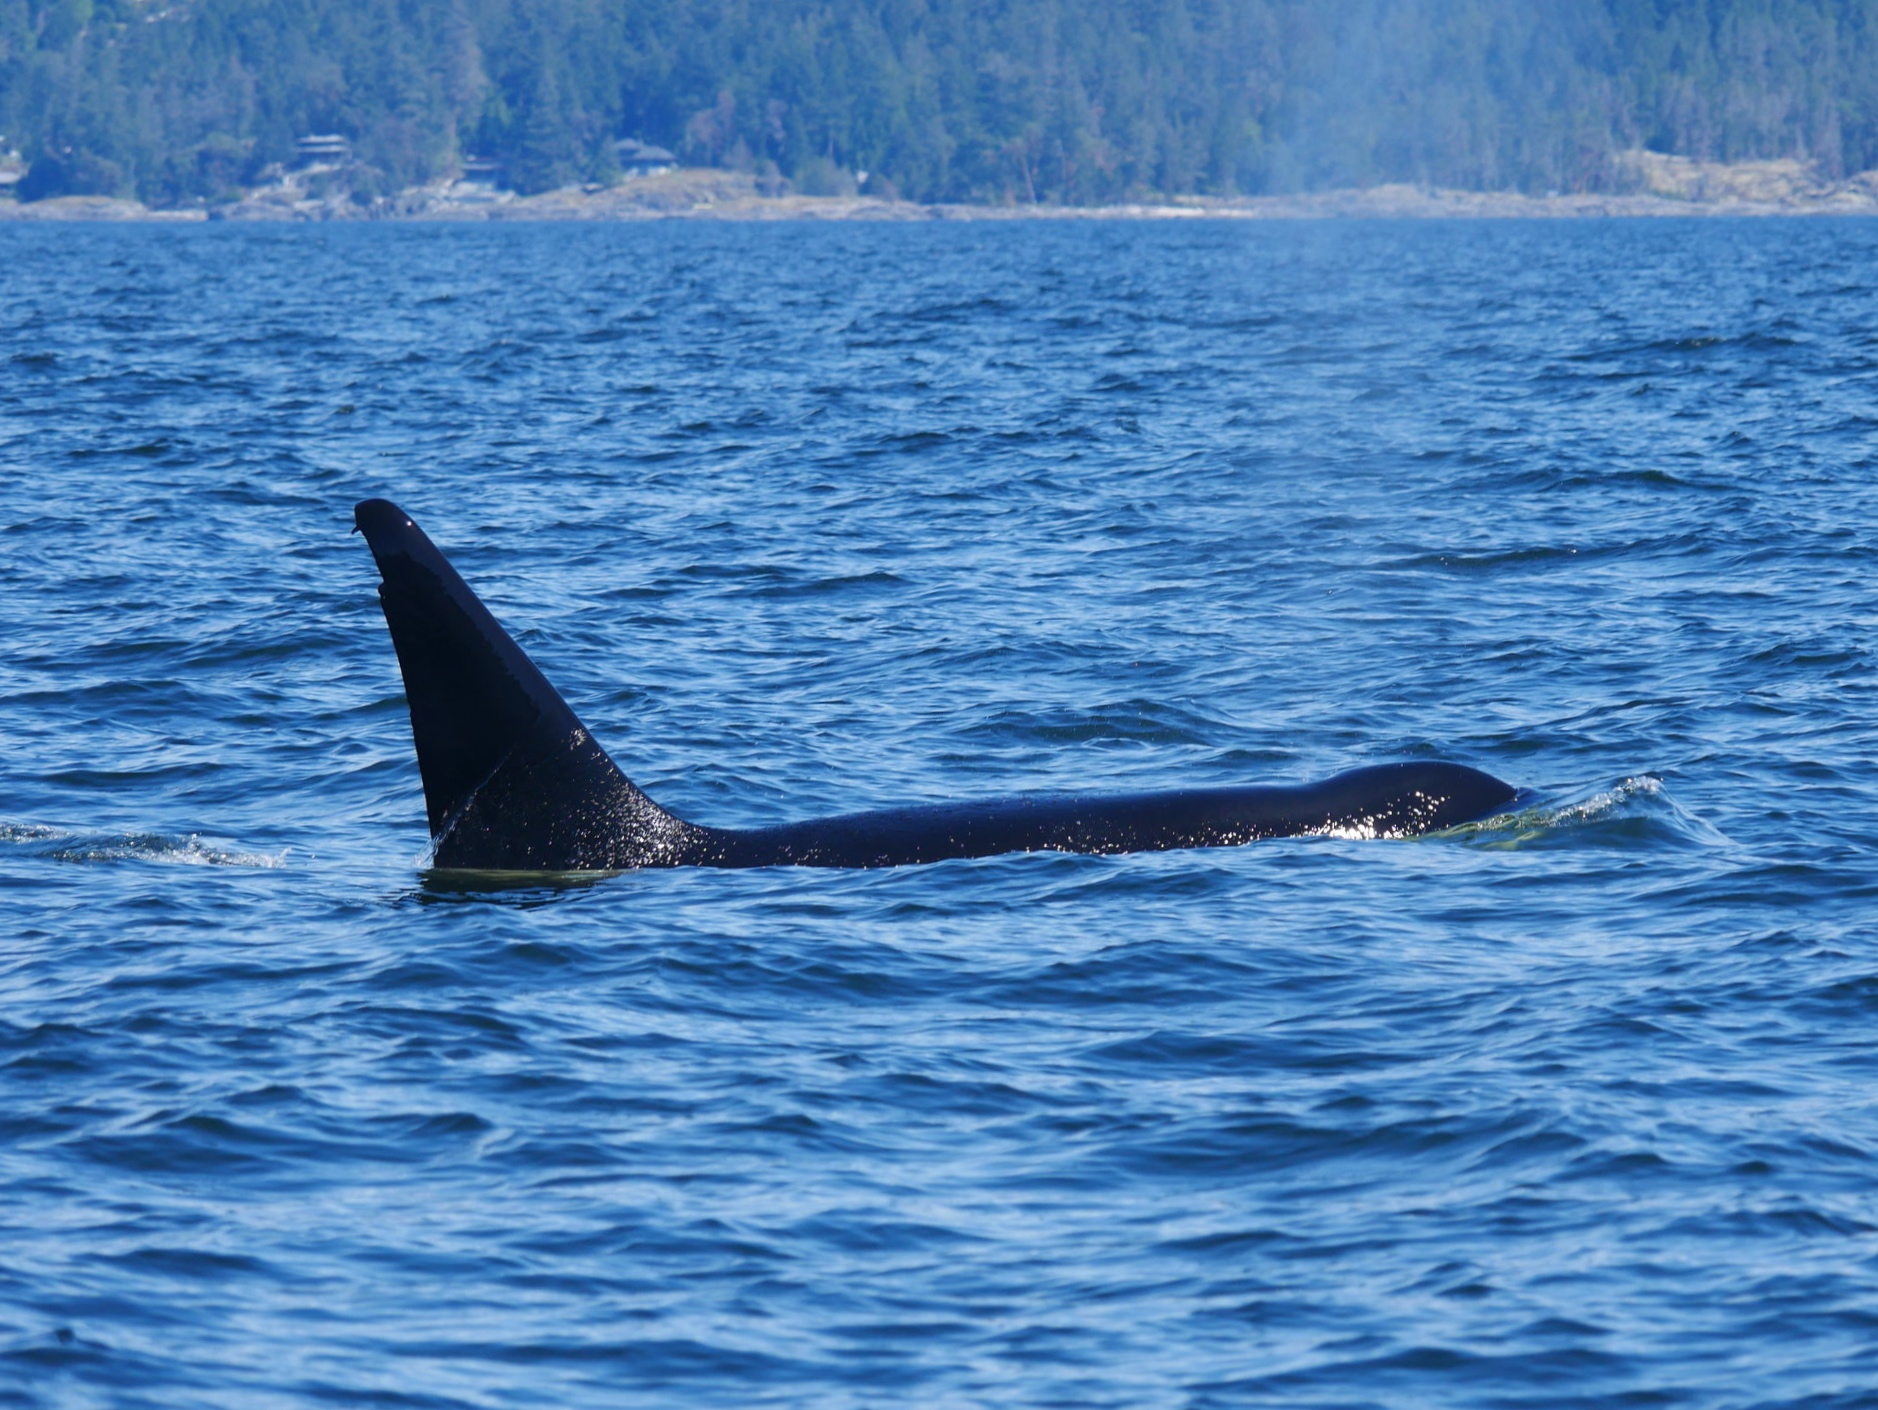 Harbeson with water cascading off of his dorsal fin. A male's dorsal fin can get to 6 feet tall!